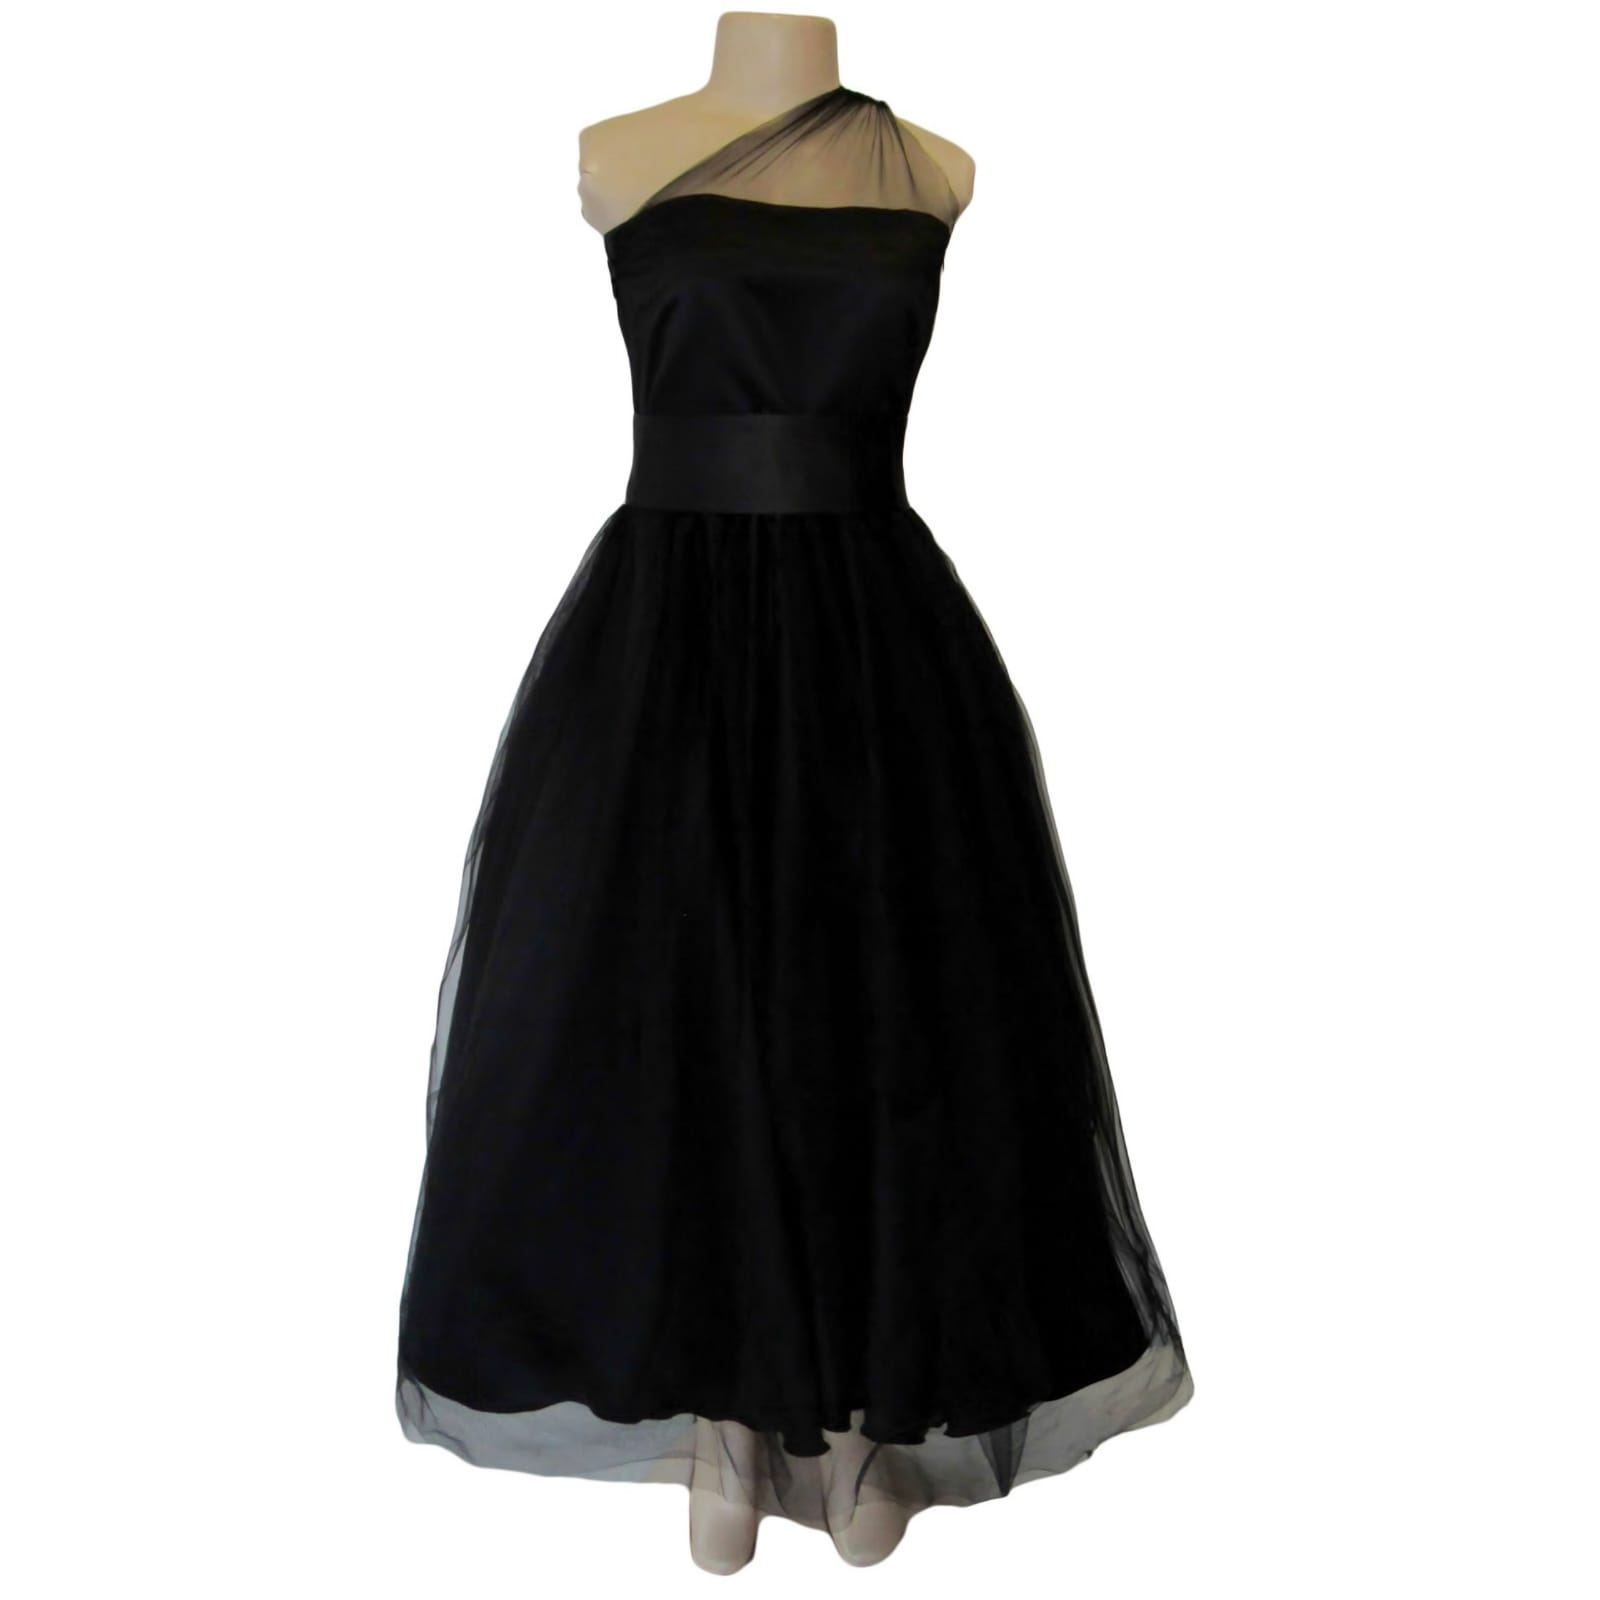 Back ankle length evening party dress 4 back ankle-length evening party dress, overlay with tulle, with a high waisted satin belt. Bodice with tulle creating a one-shoulder design